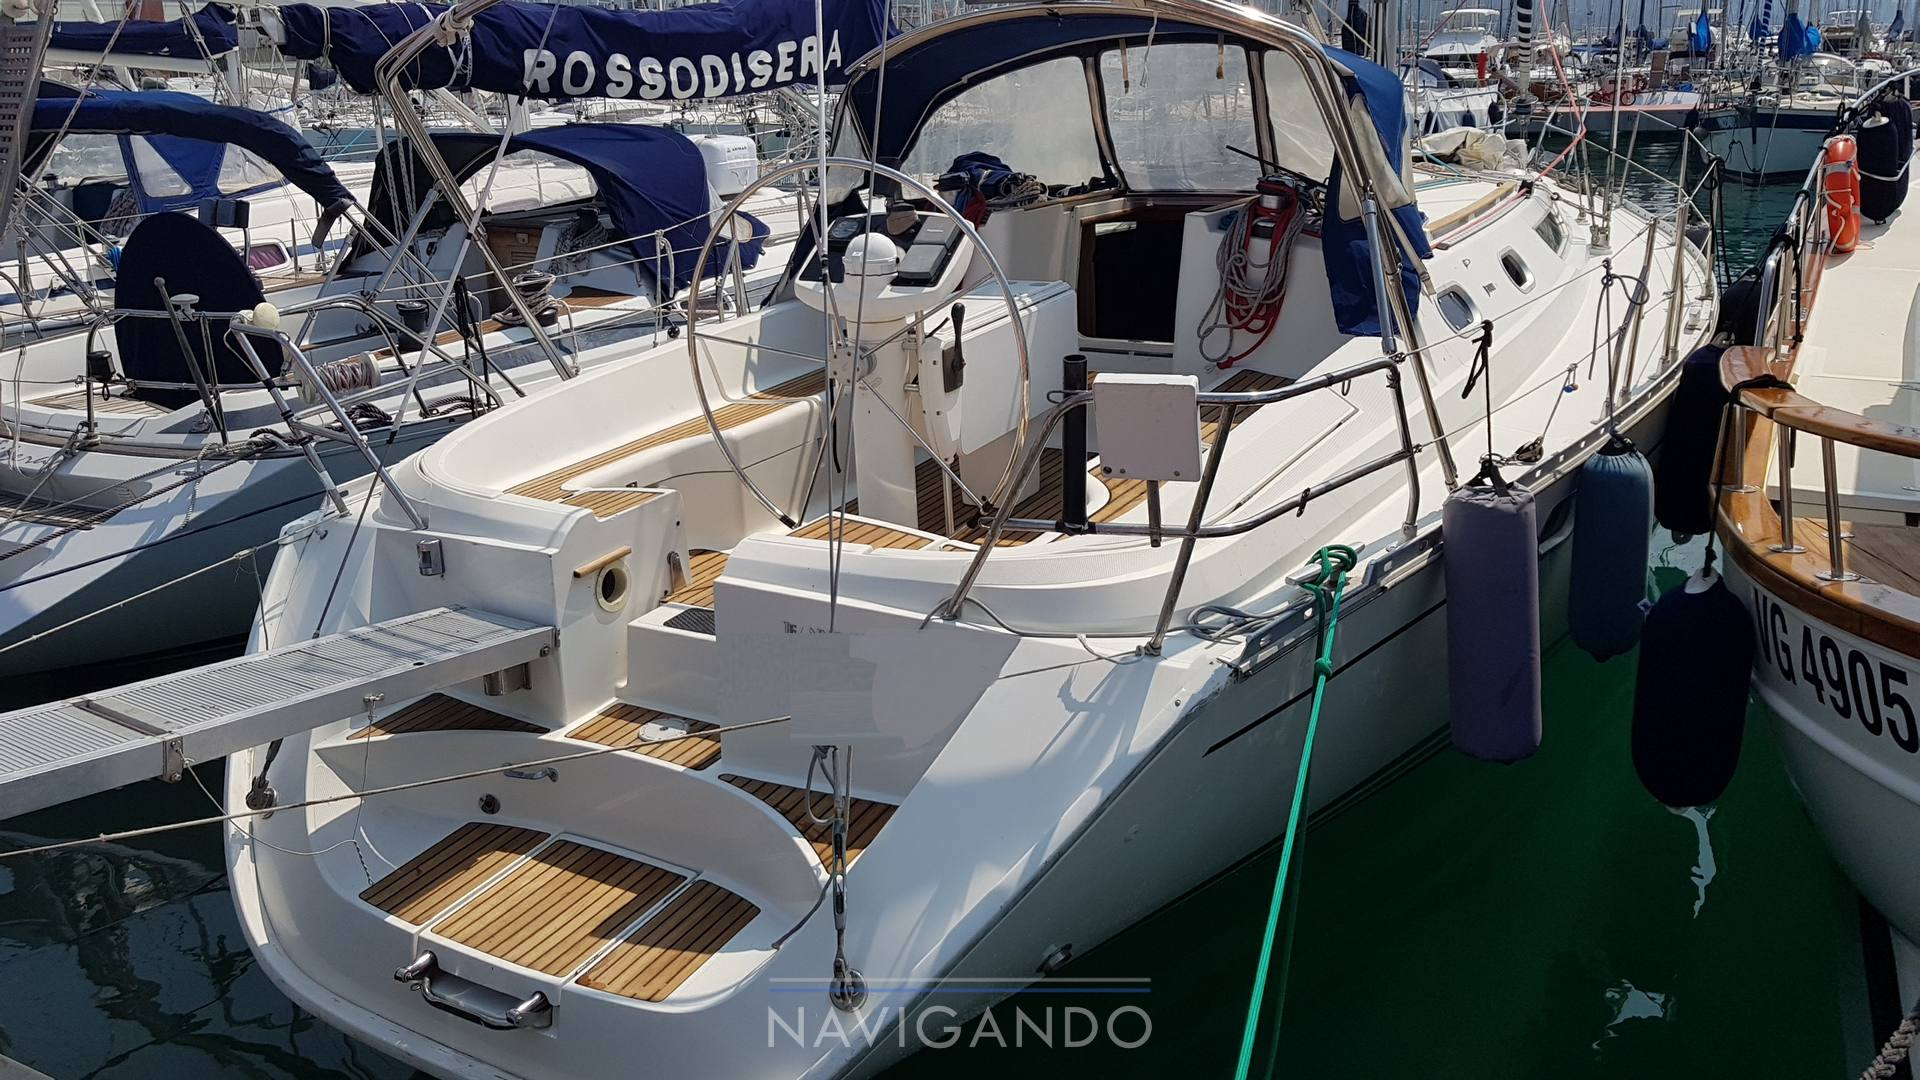 Jeanneau Sun odyssey 42.2 Sailing boat used for sale